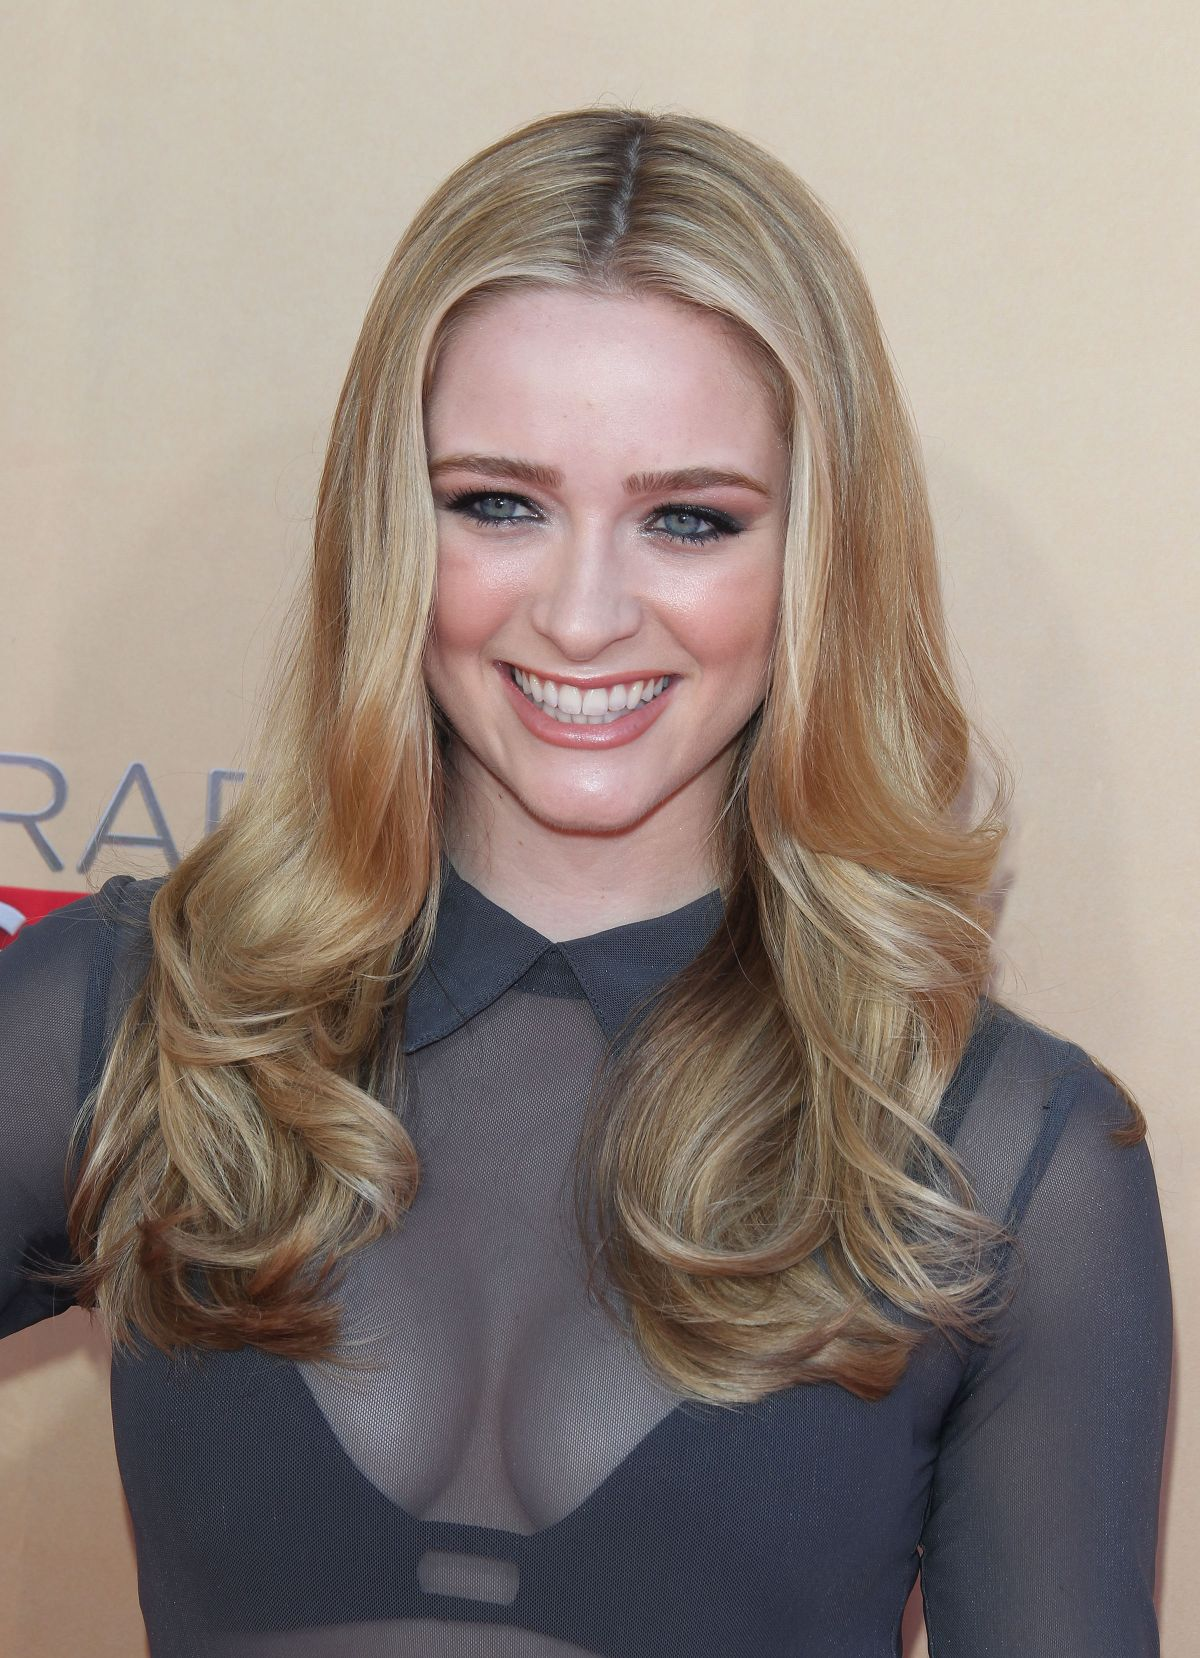 Greer Grammer naked (91 photo) Topless, Twitter, in bikini